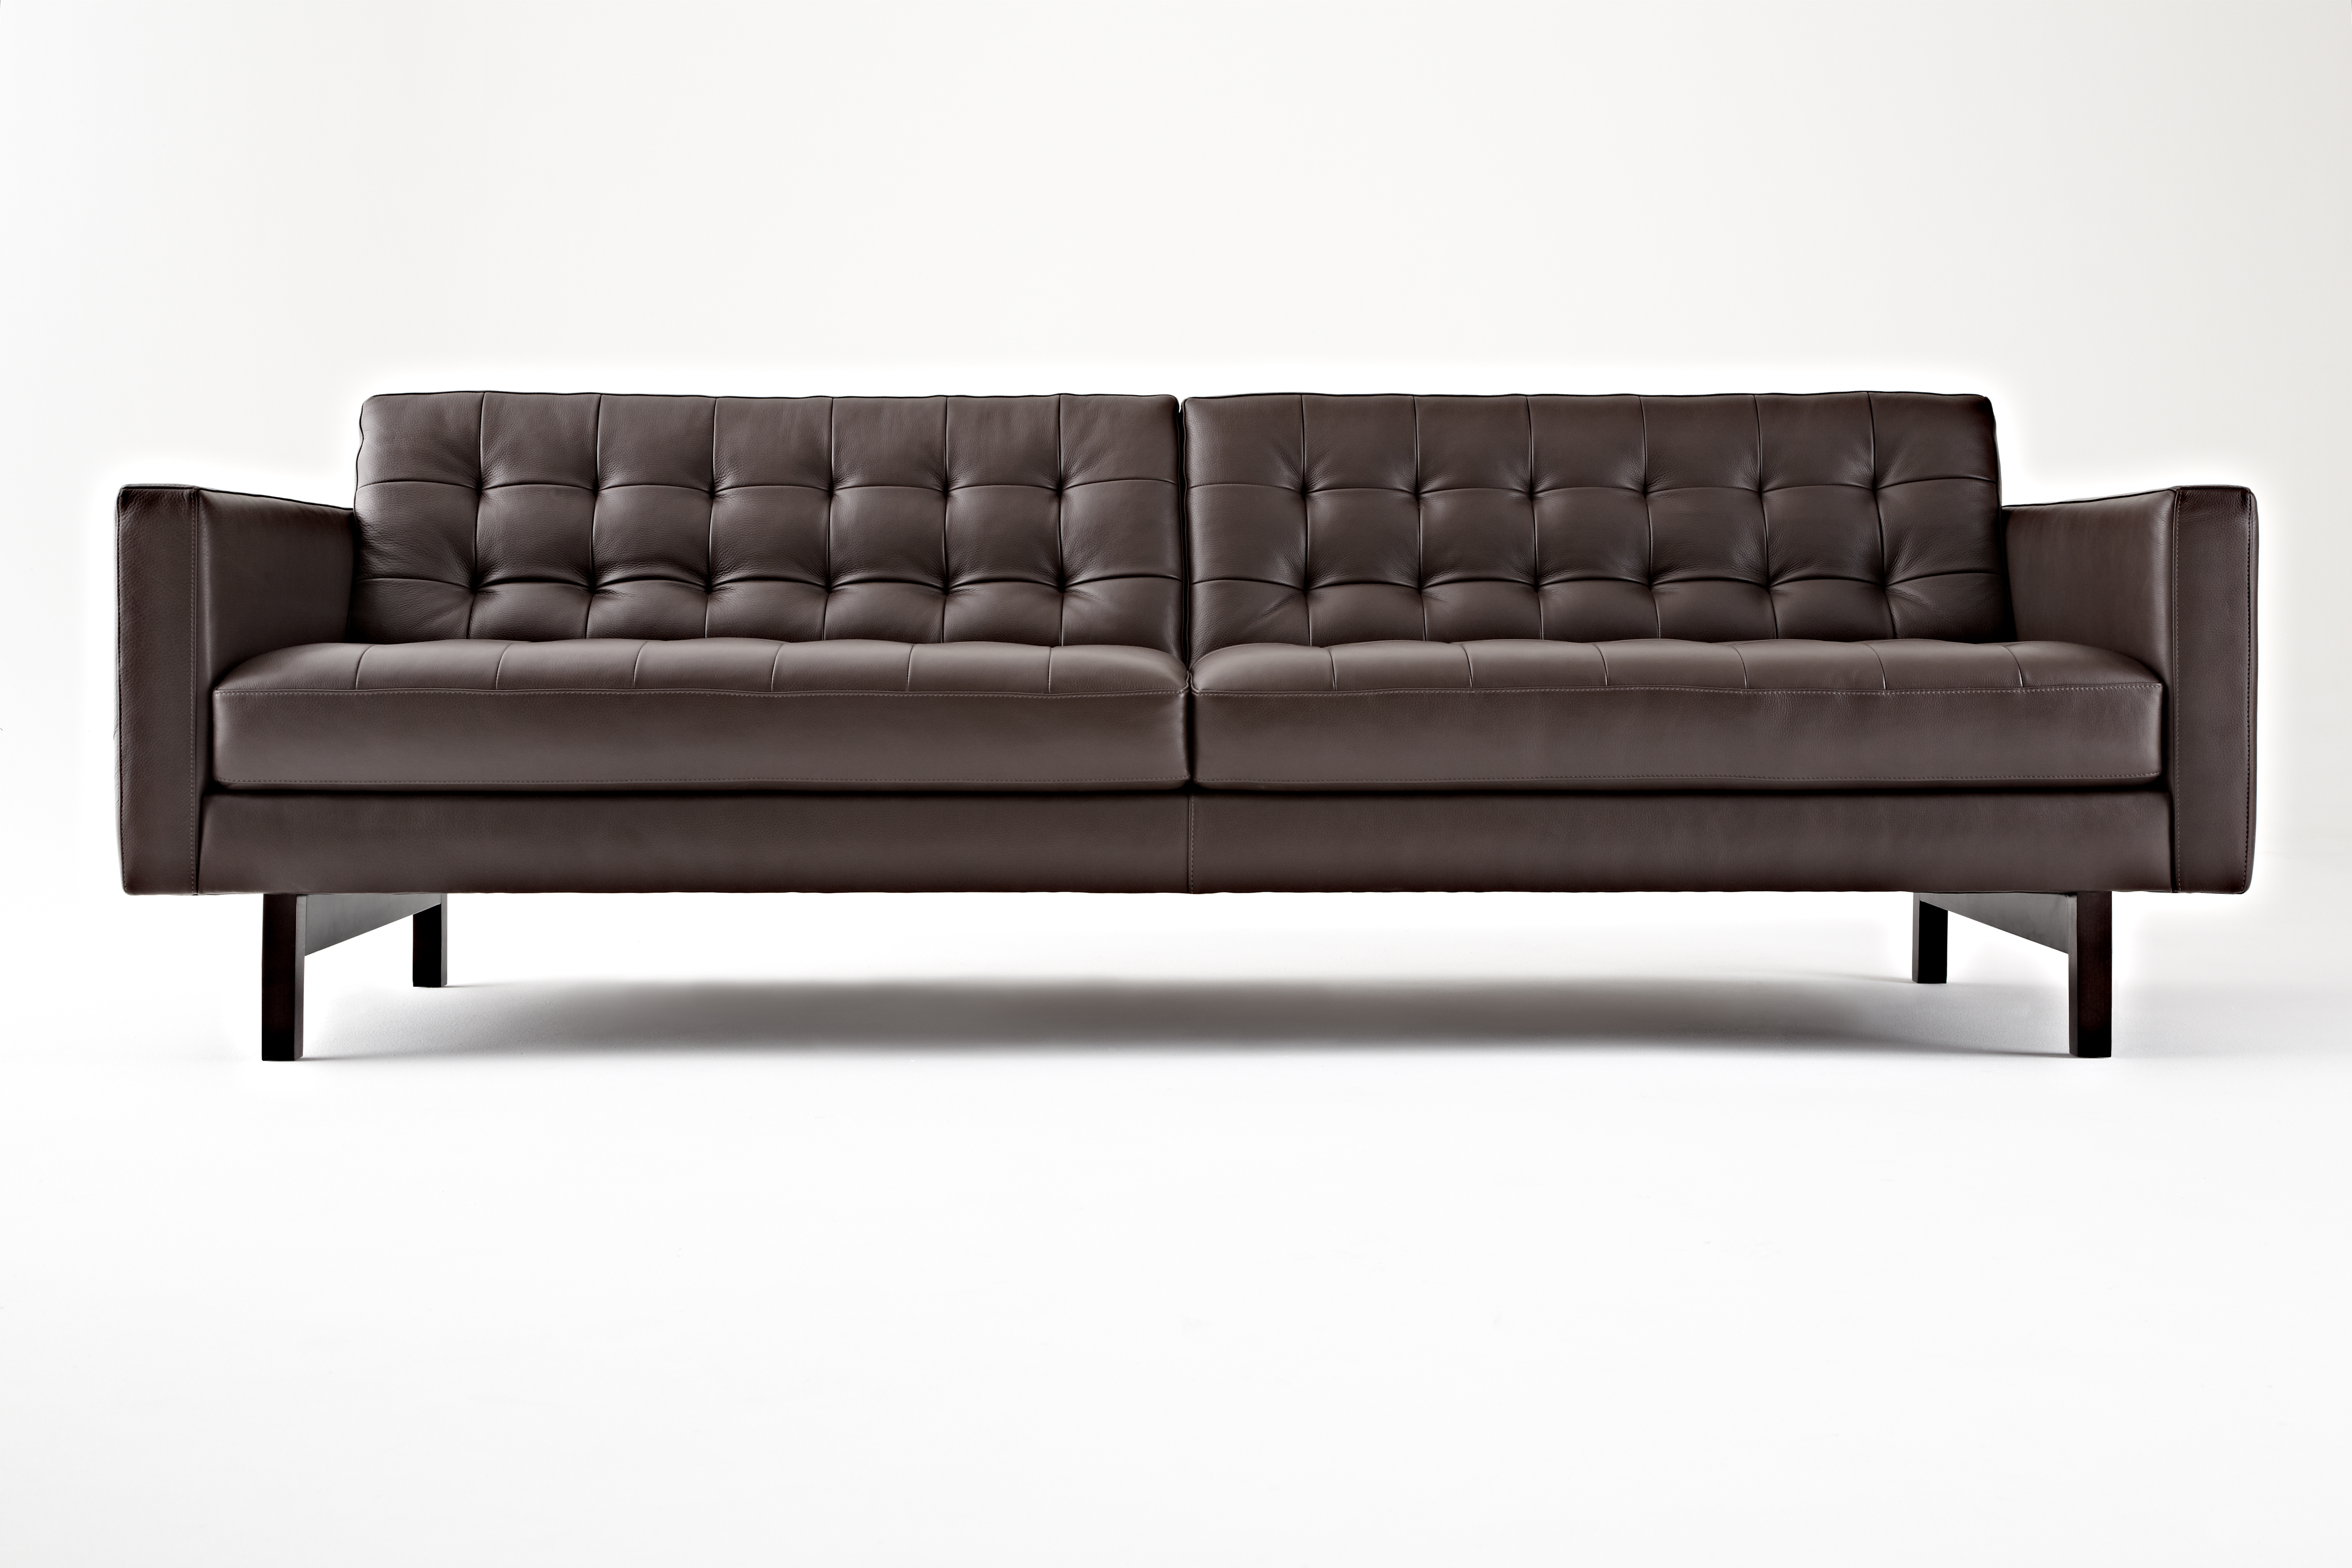 American Leather Reveals New Generation fort Sleeper Sofa at HD